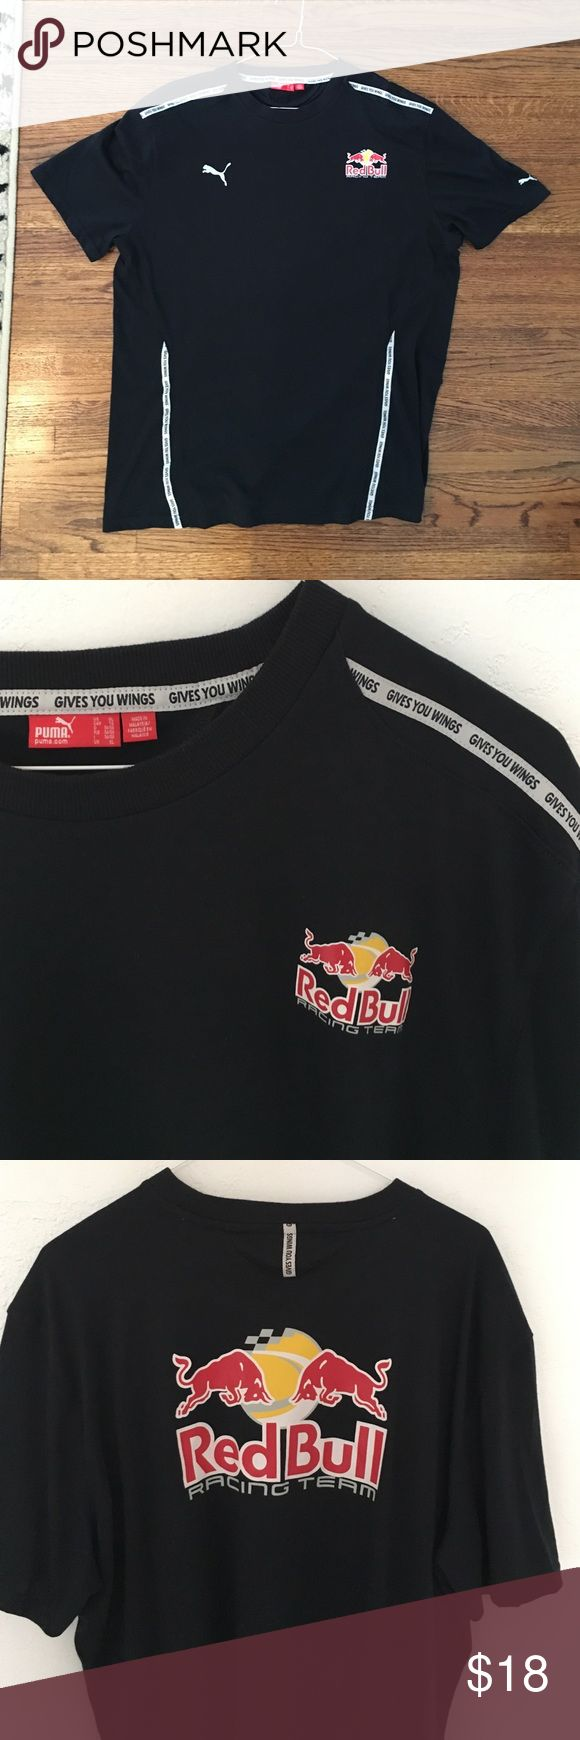 MENS PUMA Official Red Bull Racing Team shirt XL RED BULL RACING TEAM official soft cotton shirt by PUMA! Collectors item! For the racing fan! Front is photos 1,2 and 4. 3rd photo shoes back logo! RED BULL GIVES YOU WINGS! Puma Shirts Tees - Short Sleeve